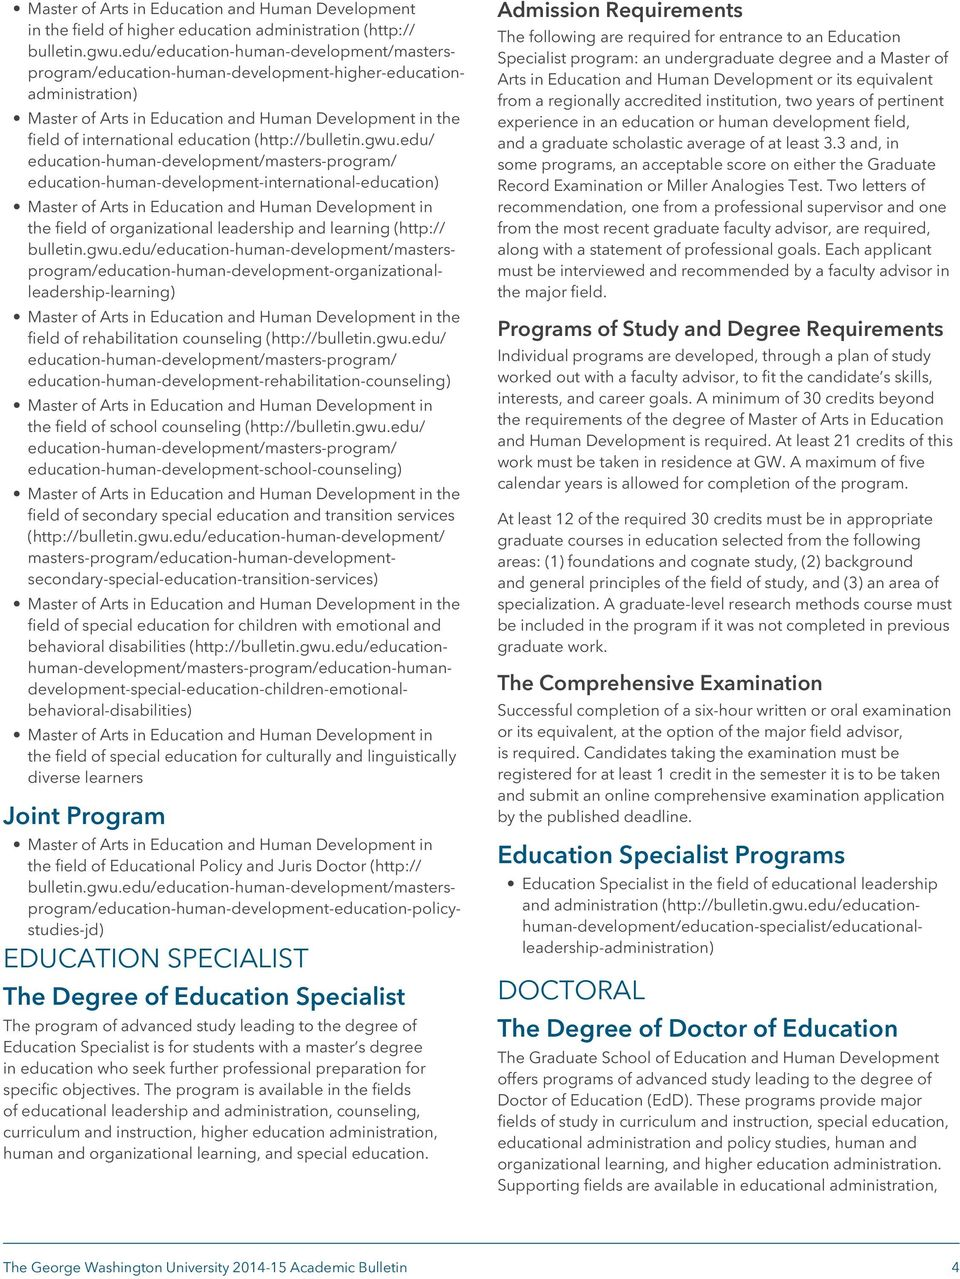 edu/ education-human-development-international-education) the field of organizational leadership and learning (http:// bulletin.gwu.